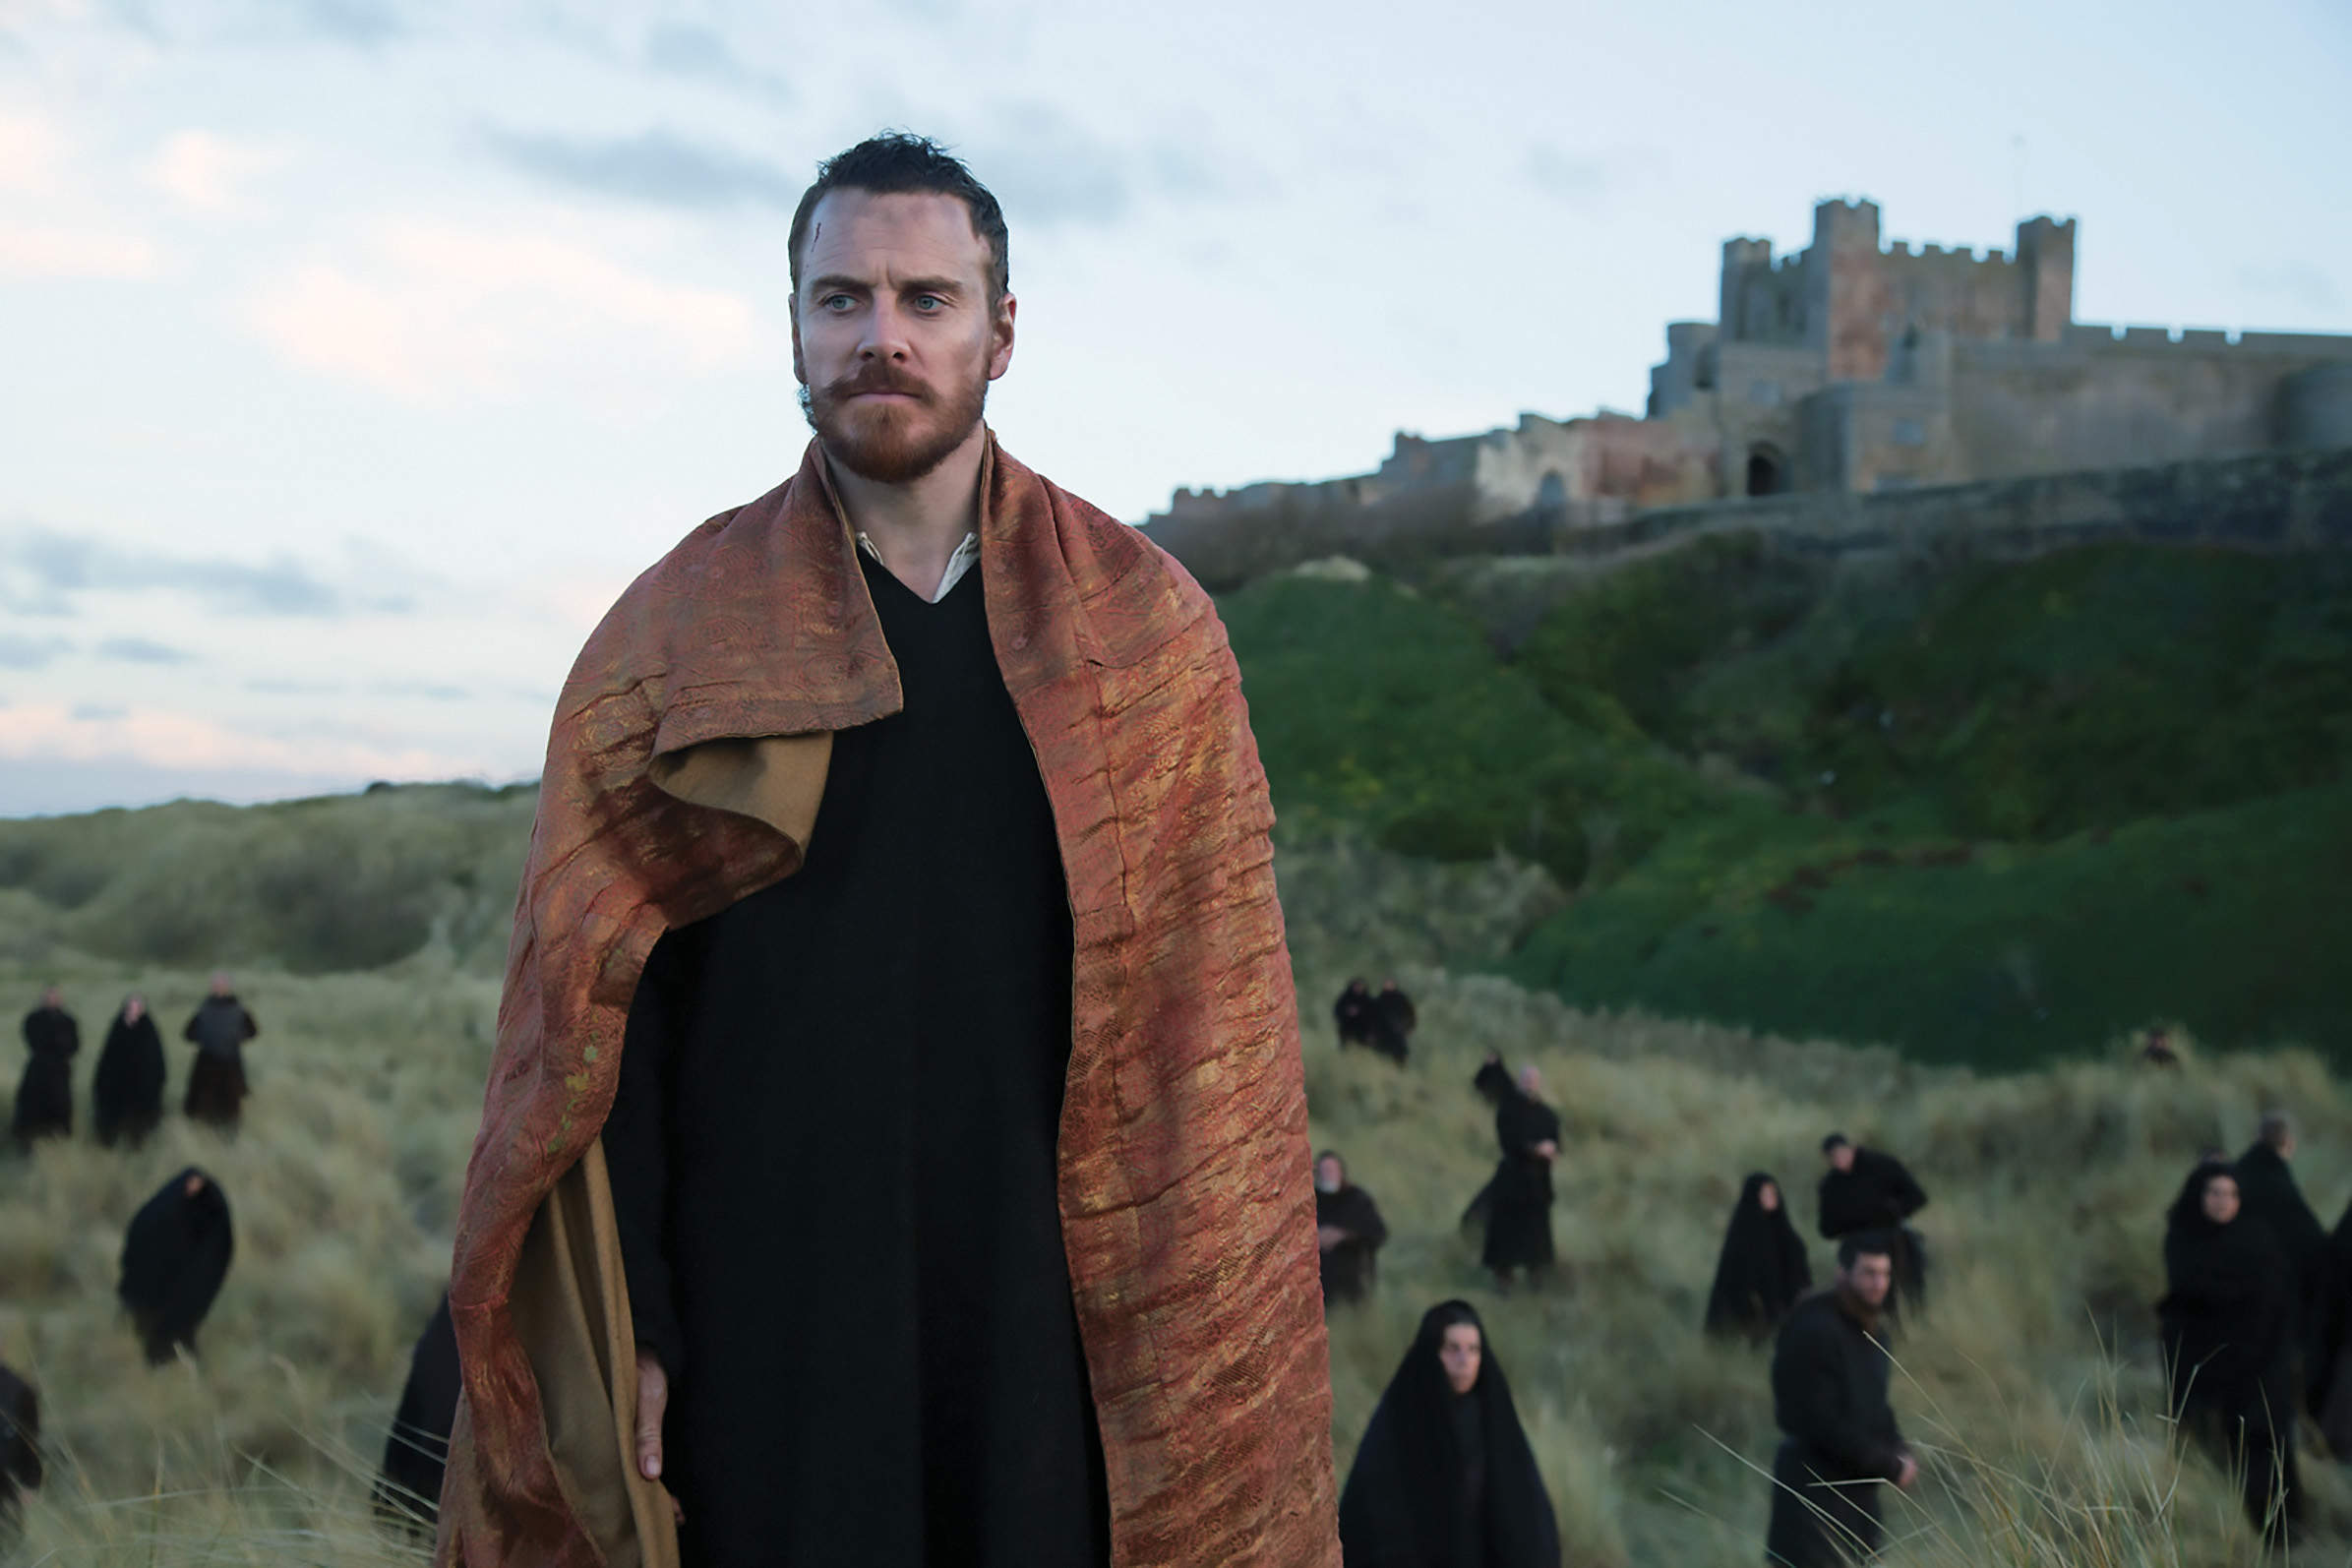 Justin Kurzel's Macbeth manages to be both heightened and lived-in